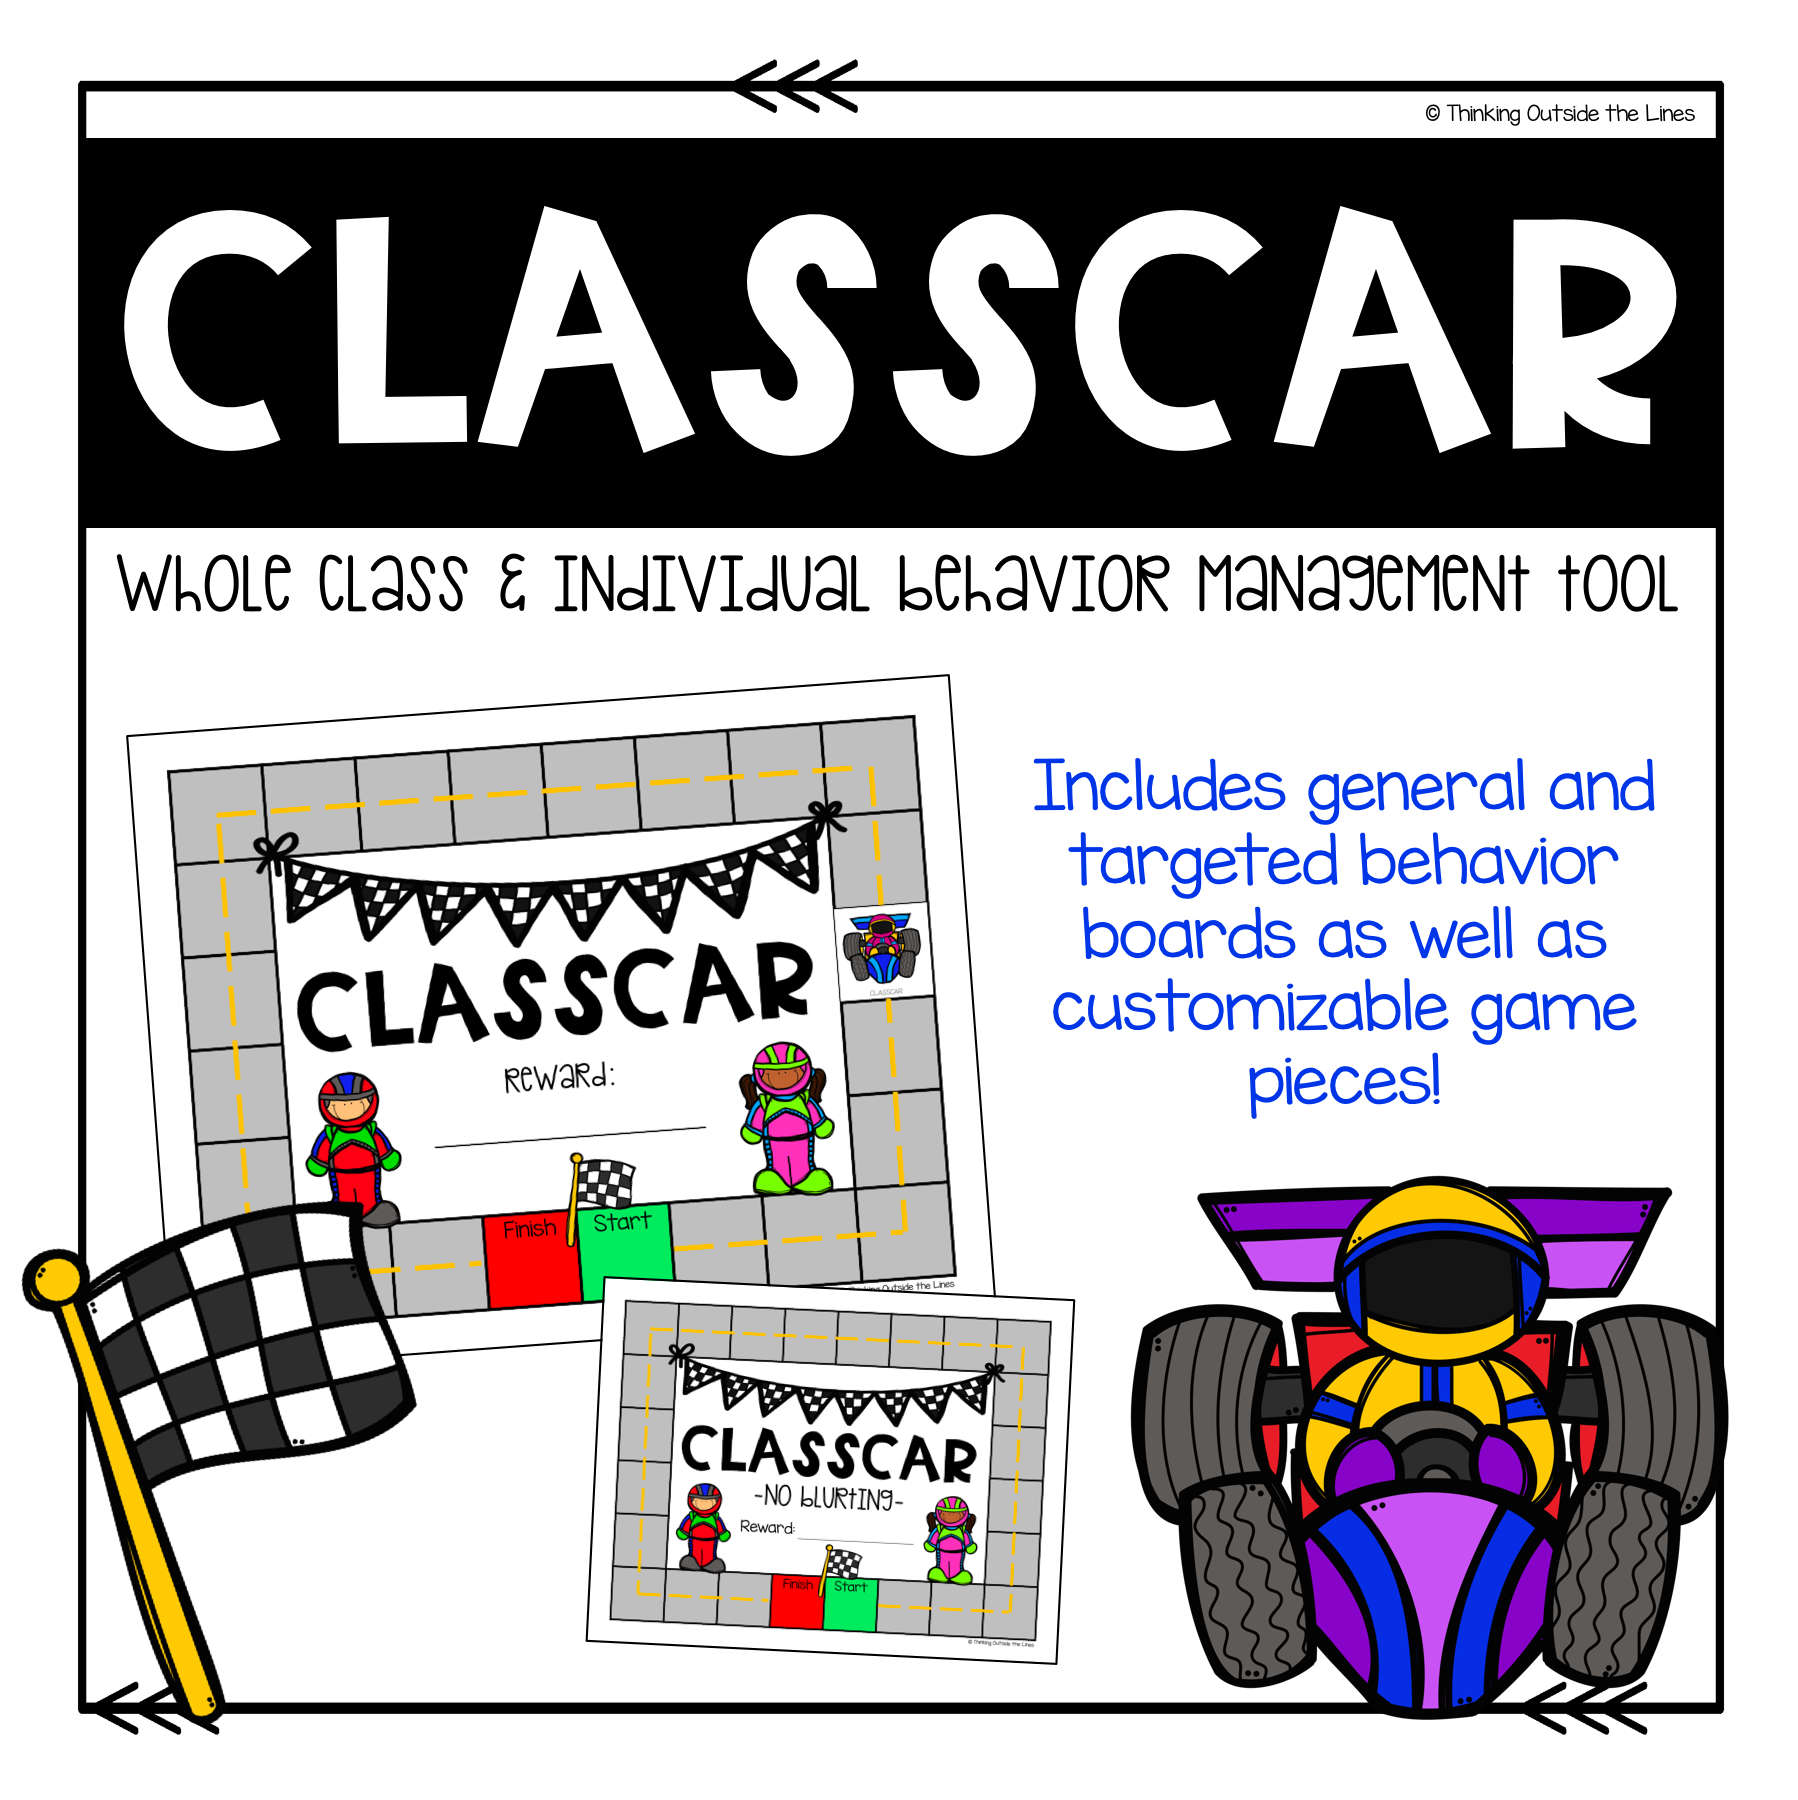 This is a fun, exciting way to change up your classroom